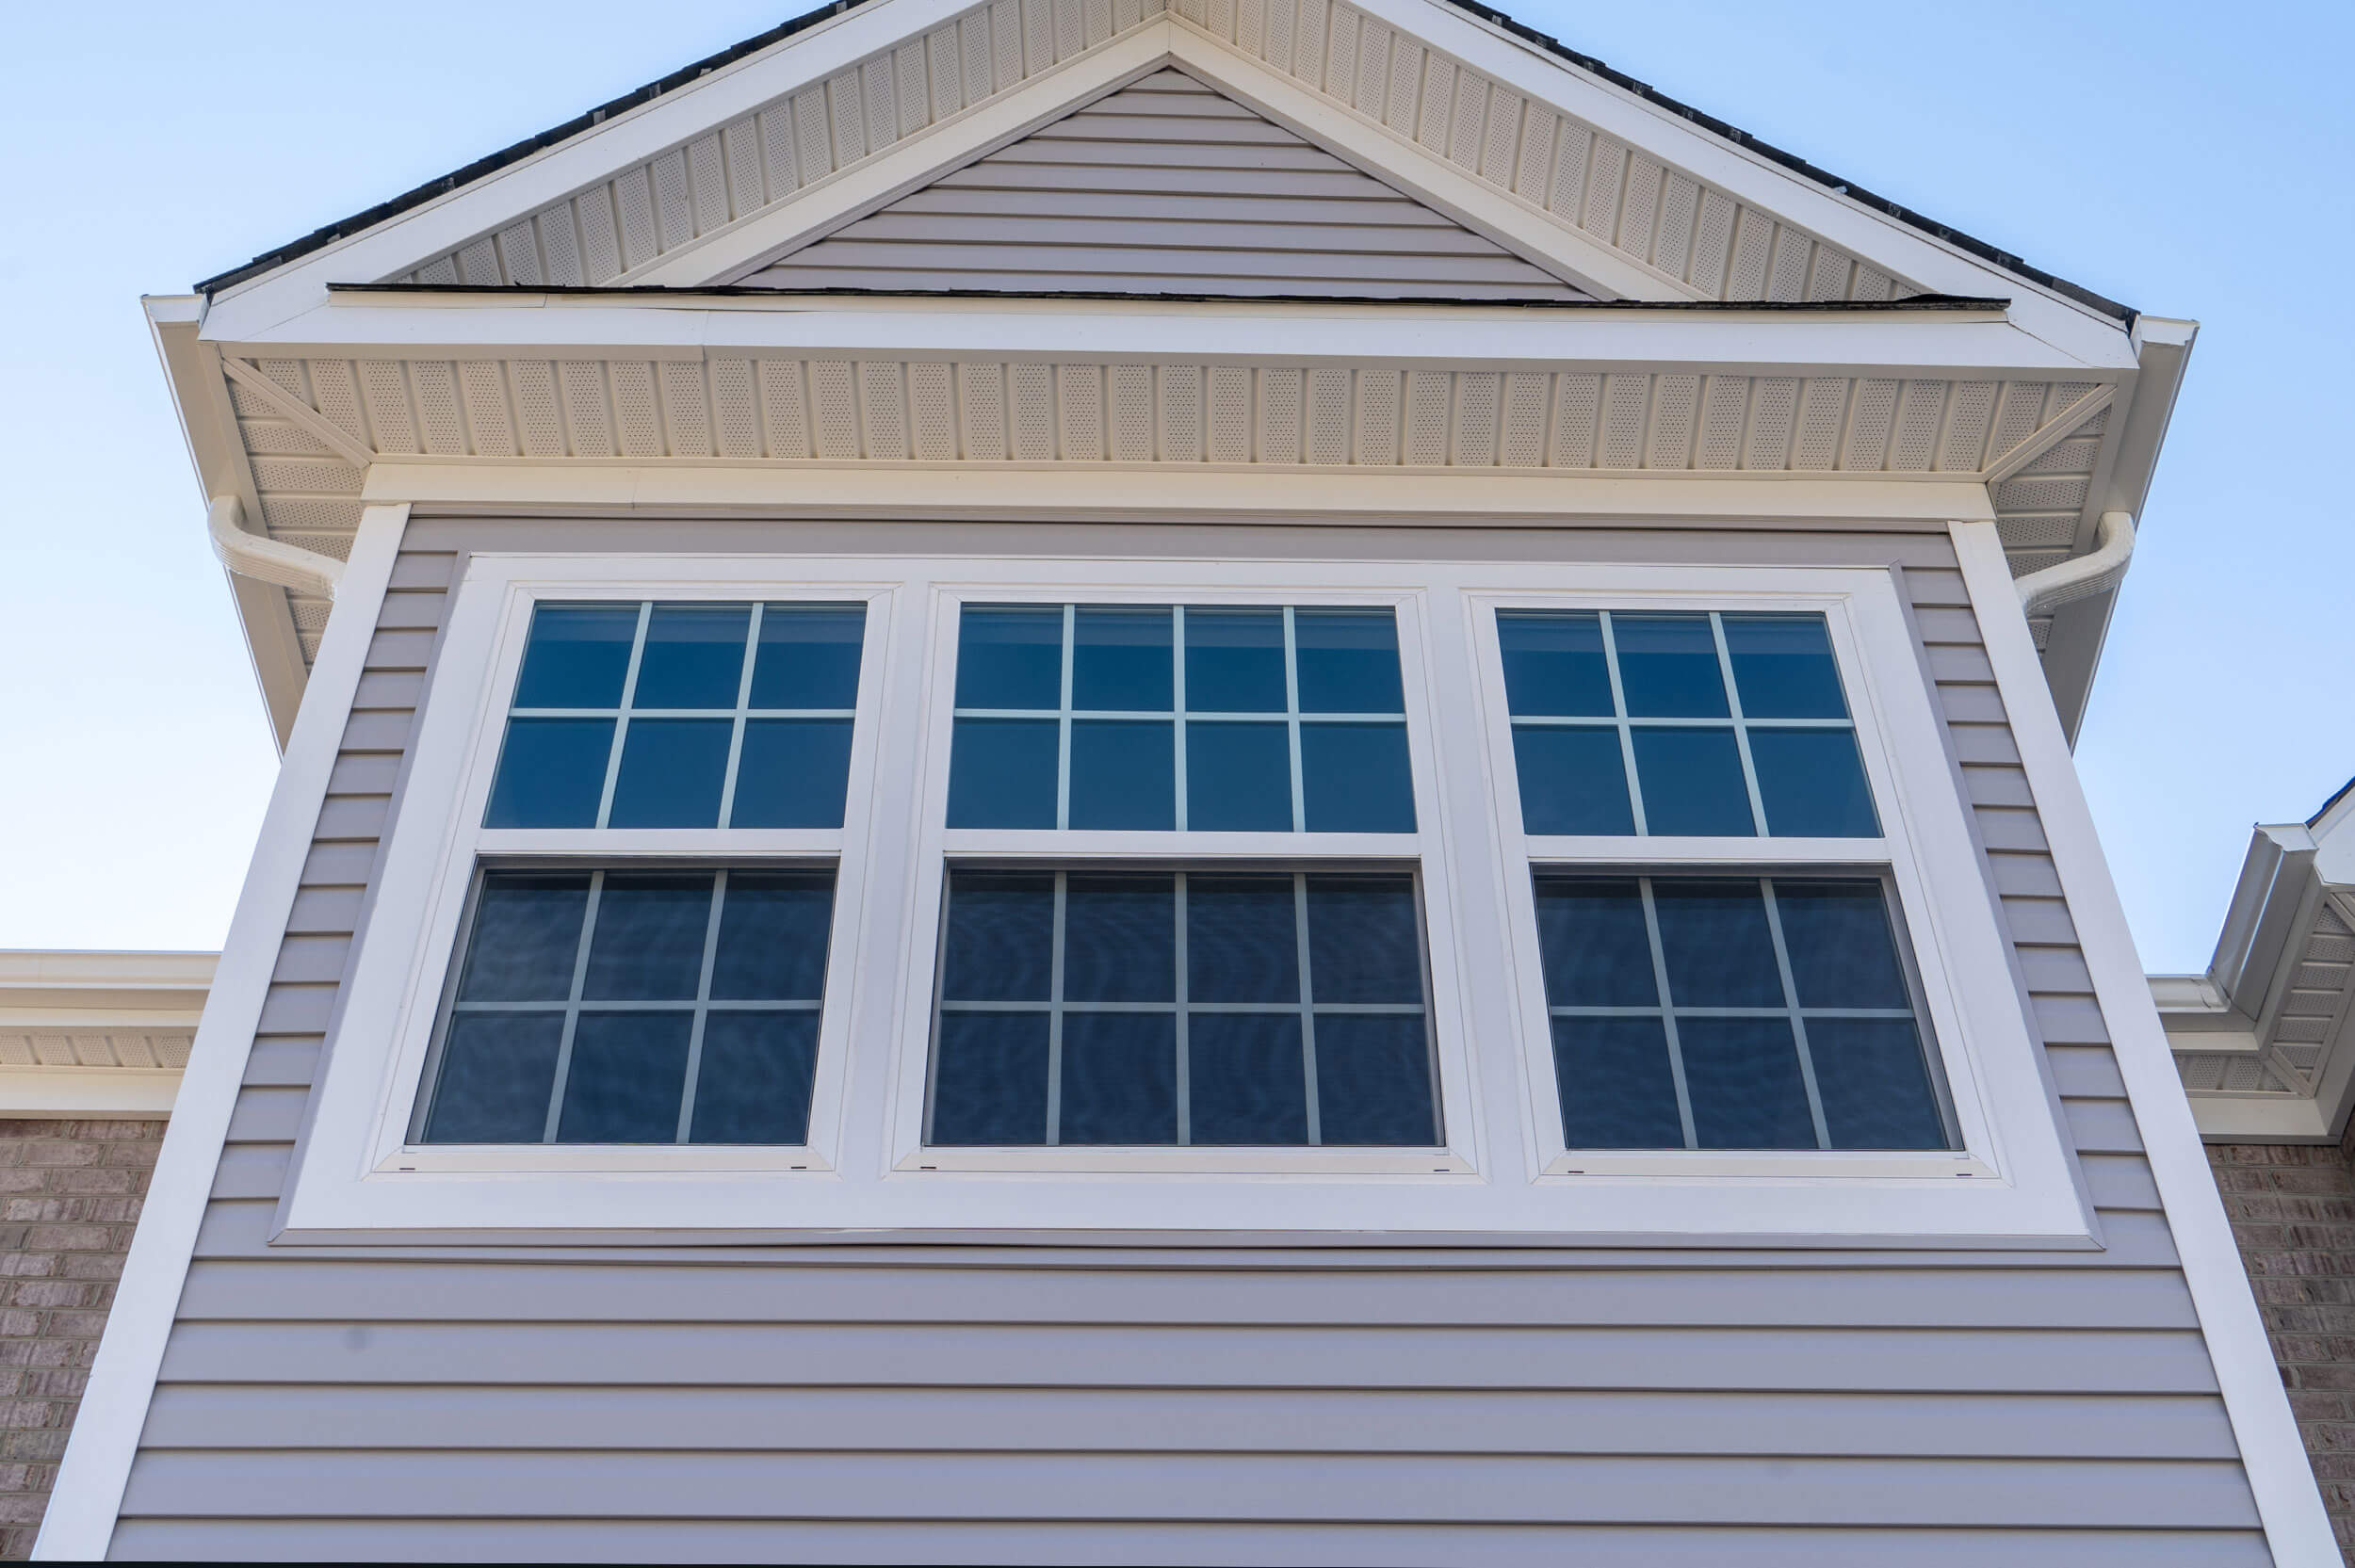 An outdoor view of a house's windows